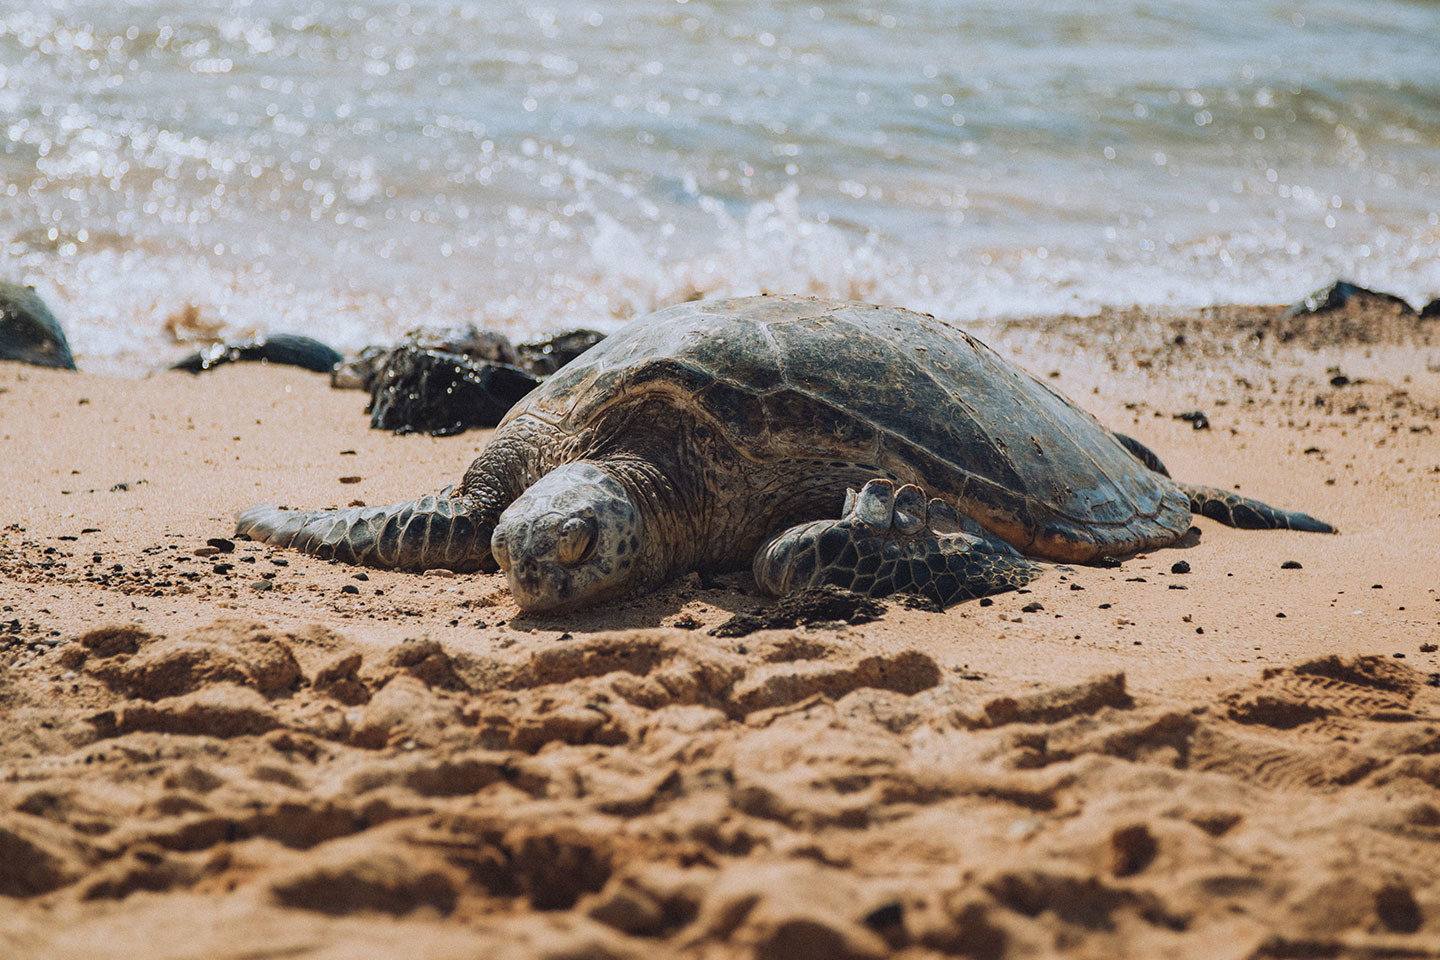 Seaturtle on the shore at Poipu beach